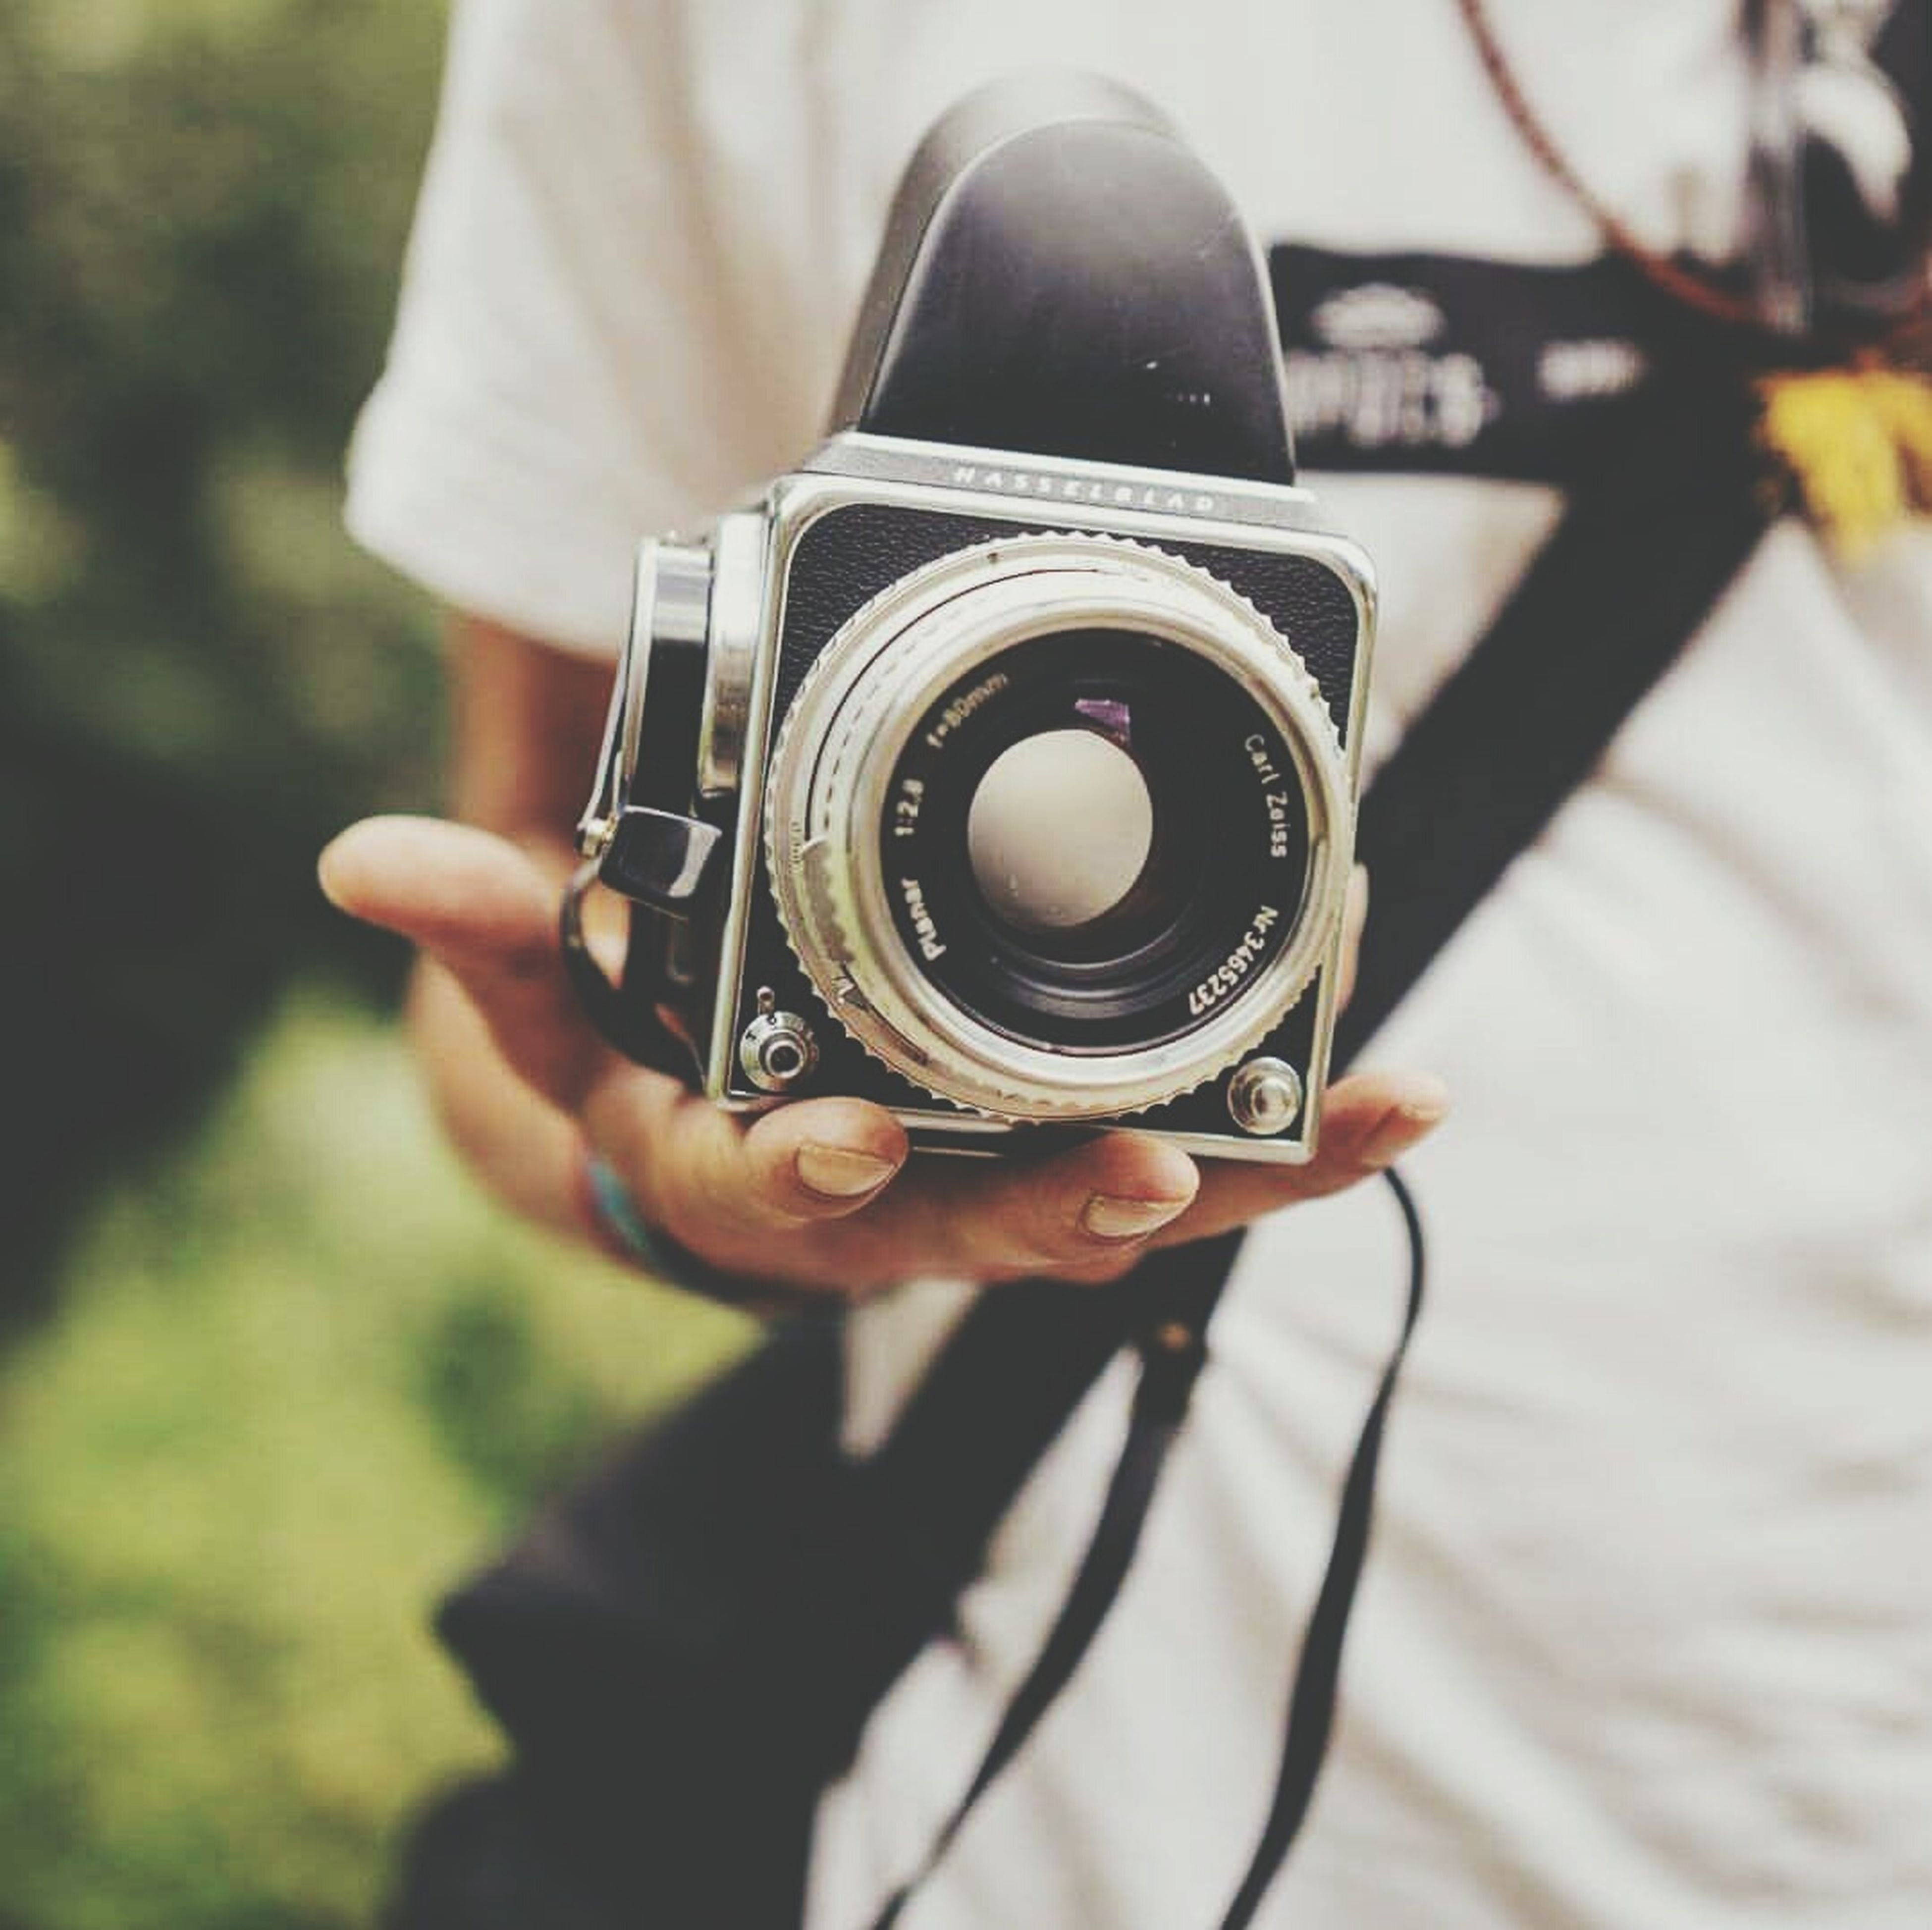 photography themes, camera - photographic equipment, technology, photographing, digital camera, holding, slr camera, photographic equipment, camera, photographer, old-fashioned, focus on foreground, connection, hobbies, professional occupation, person, memories